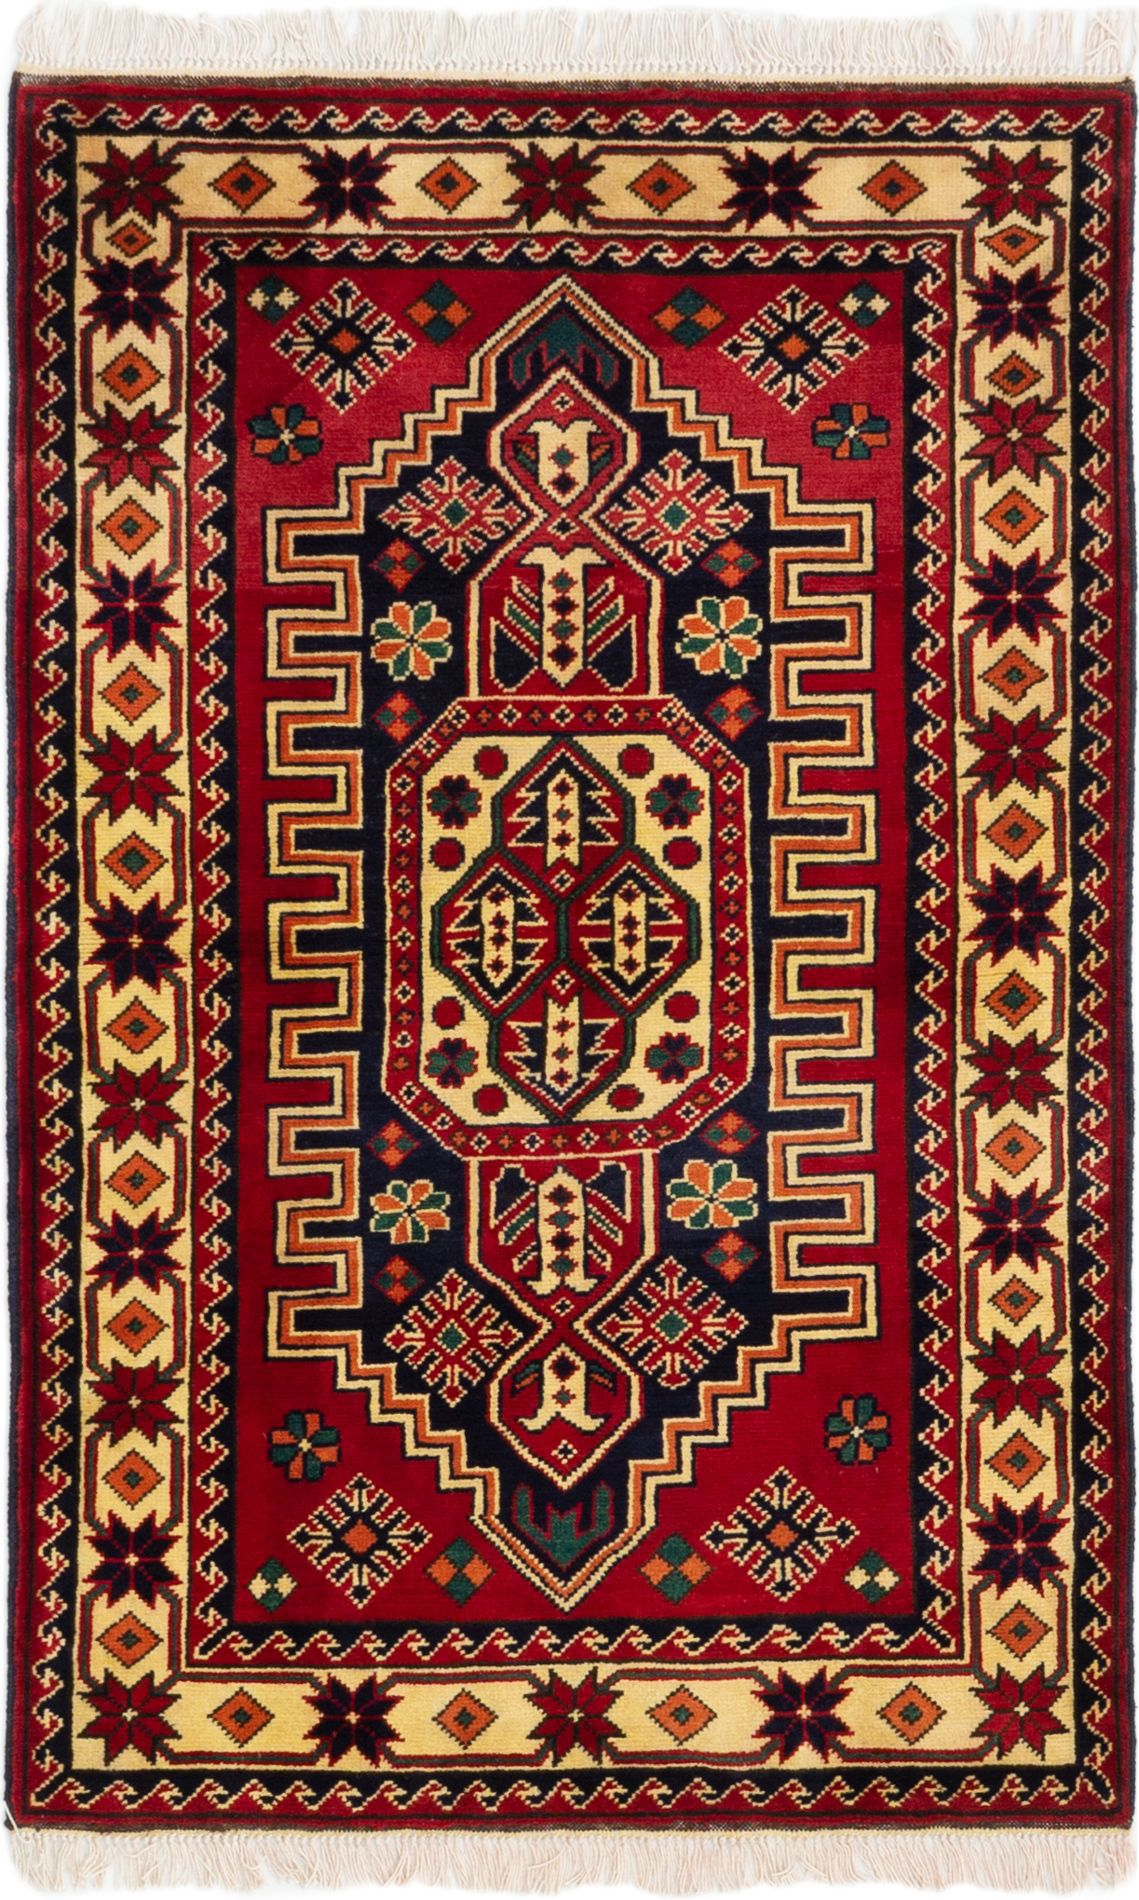 "Hand-knotted Finest Kargahi Red Wool Rug 2'11"" x 4'7"" Size: 2'11"" x 4'7"""